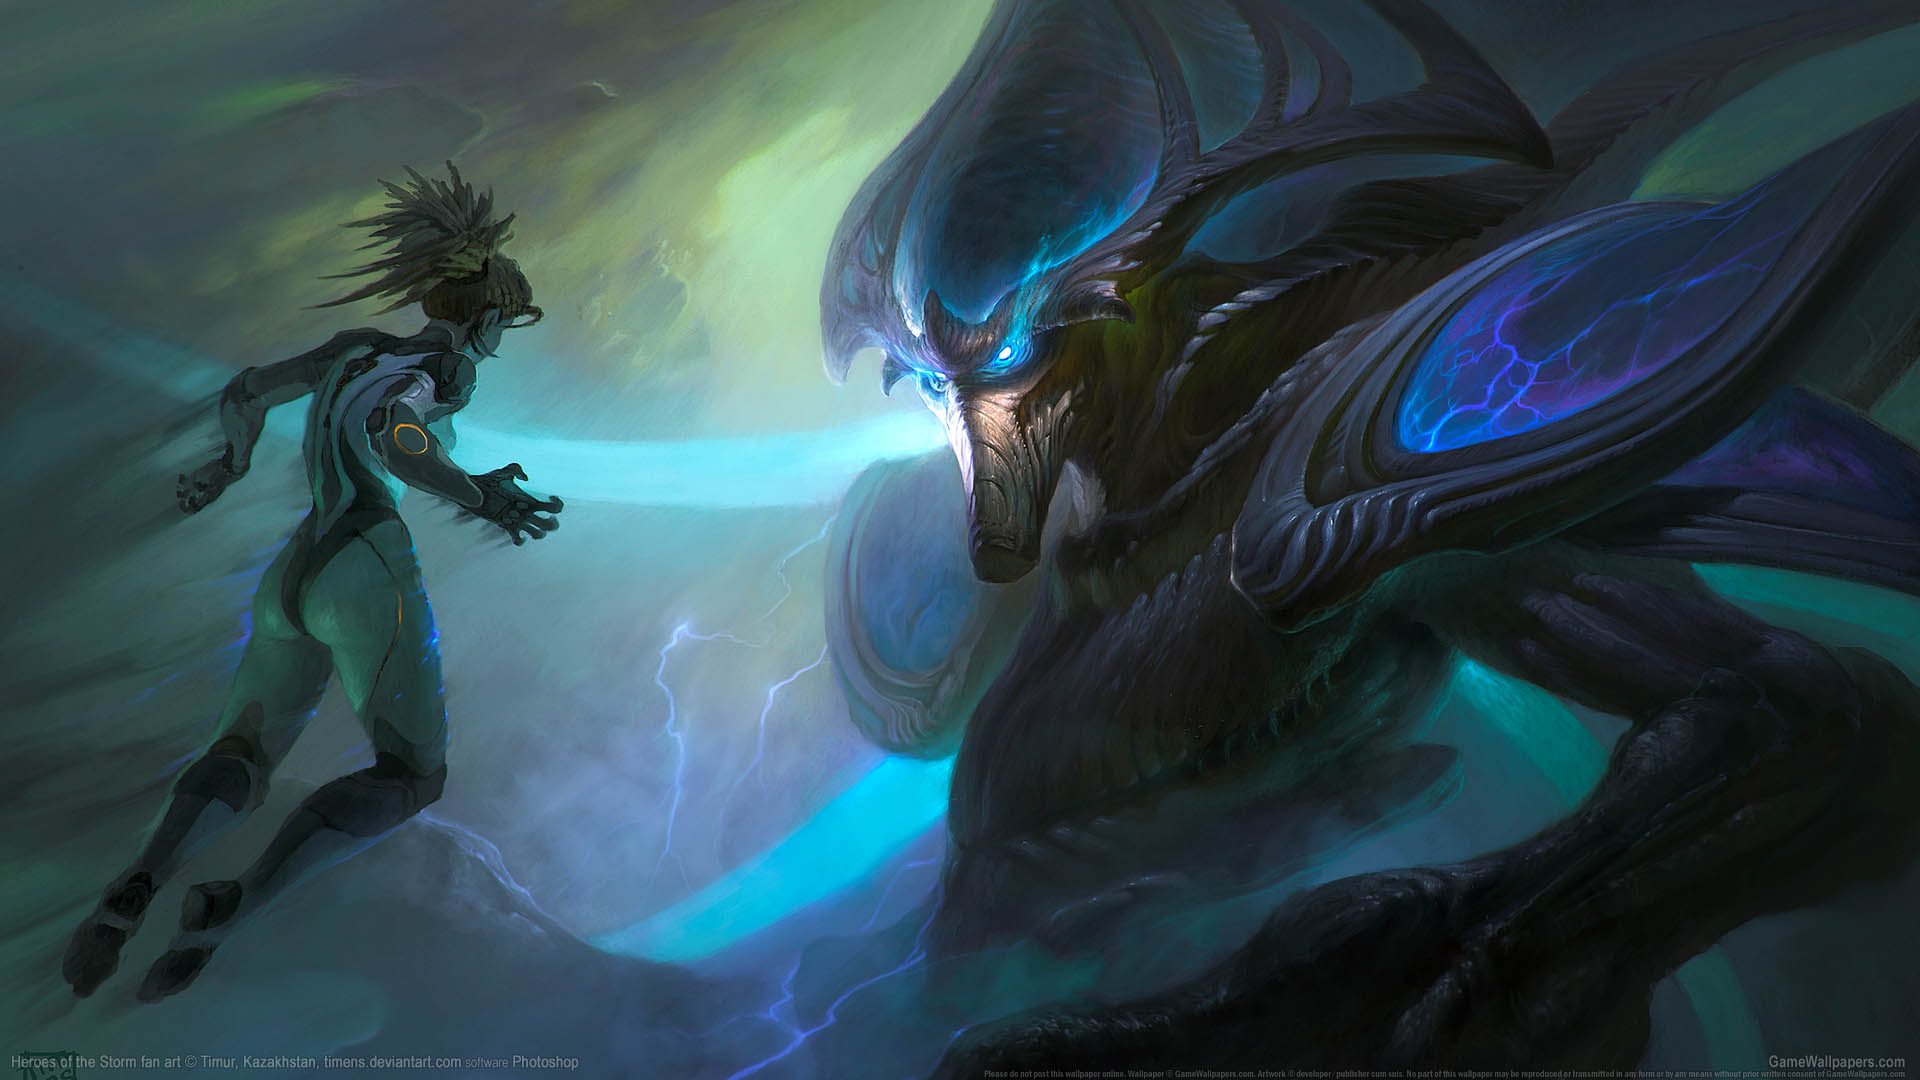 Heroes of the Storm fan art achtergrond 09 1920x1080